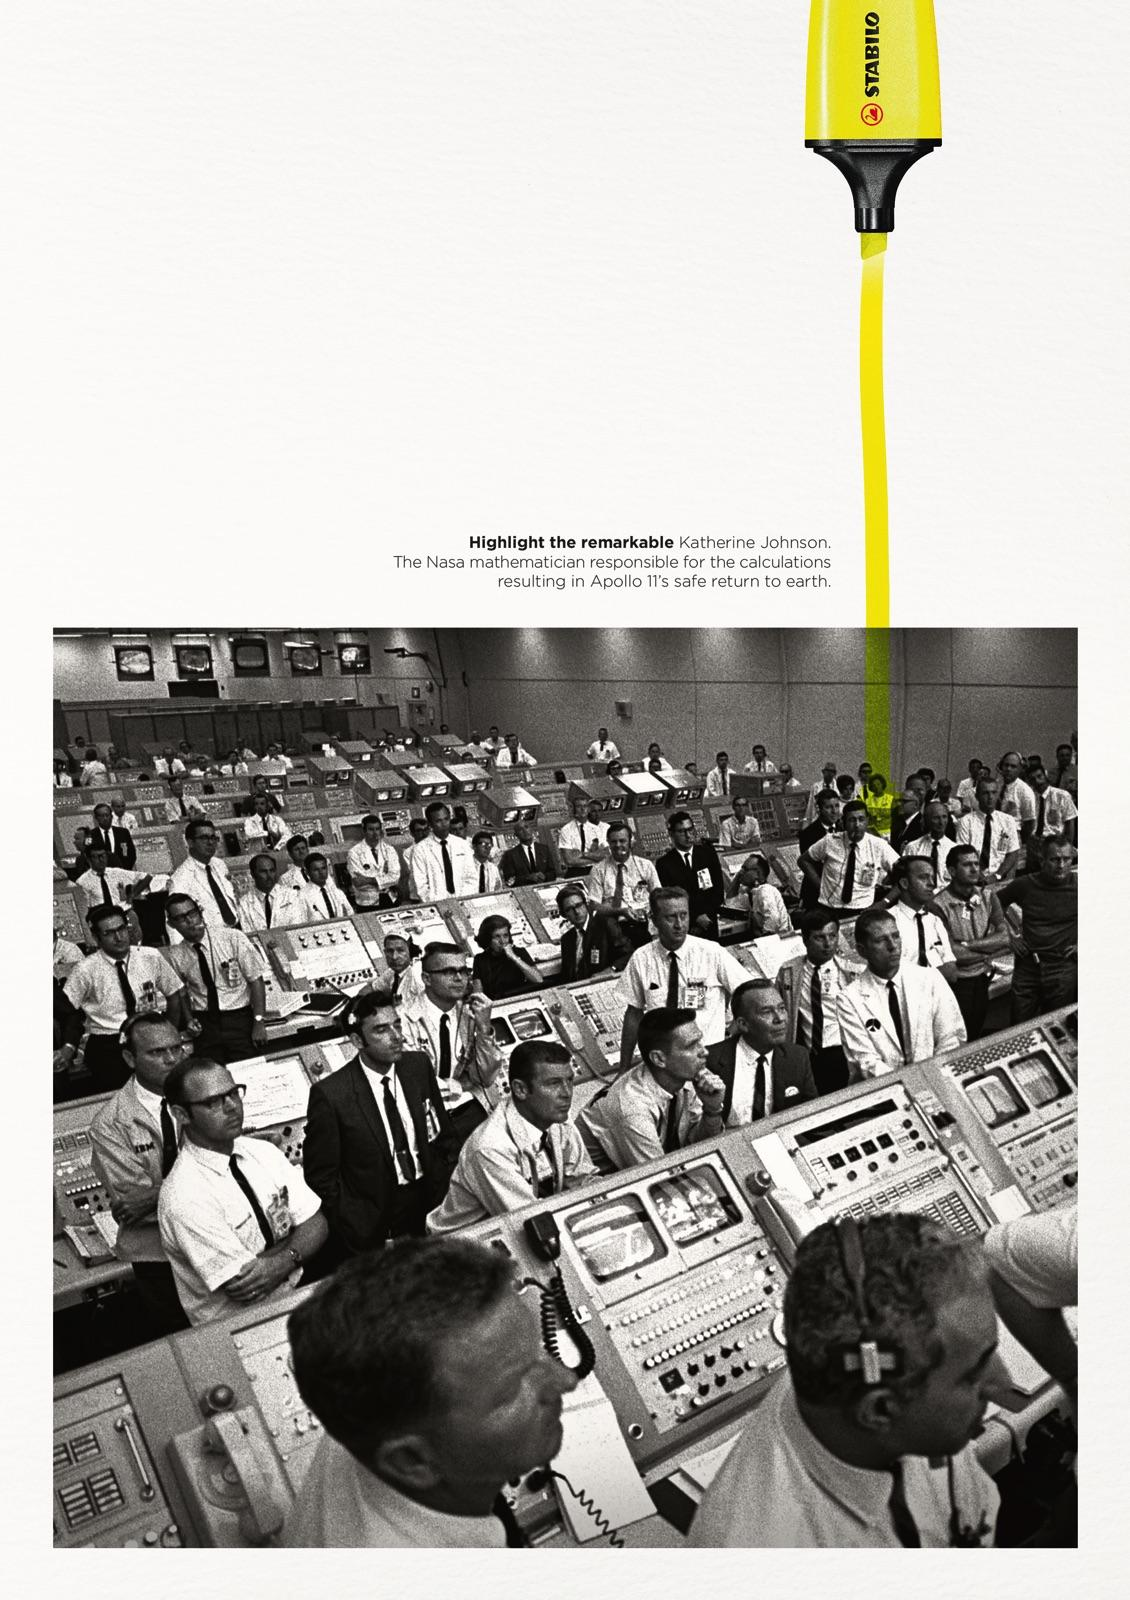 Stabilo Boss Print Ad - Highlight the Remarkable - Katherine